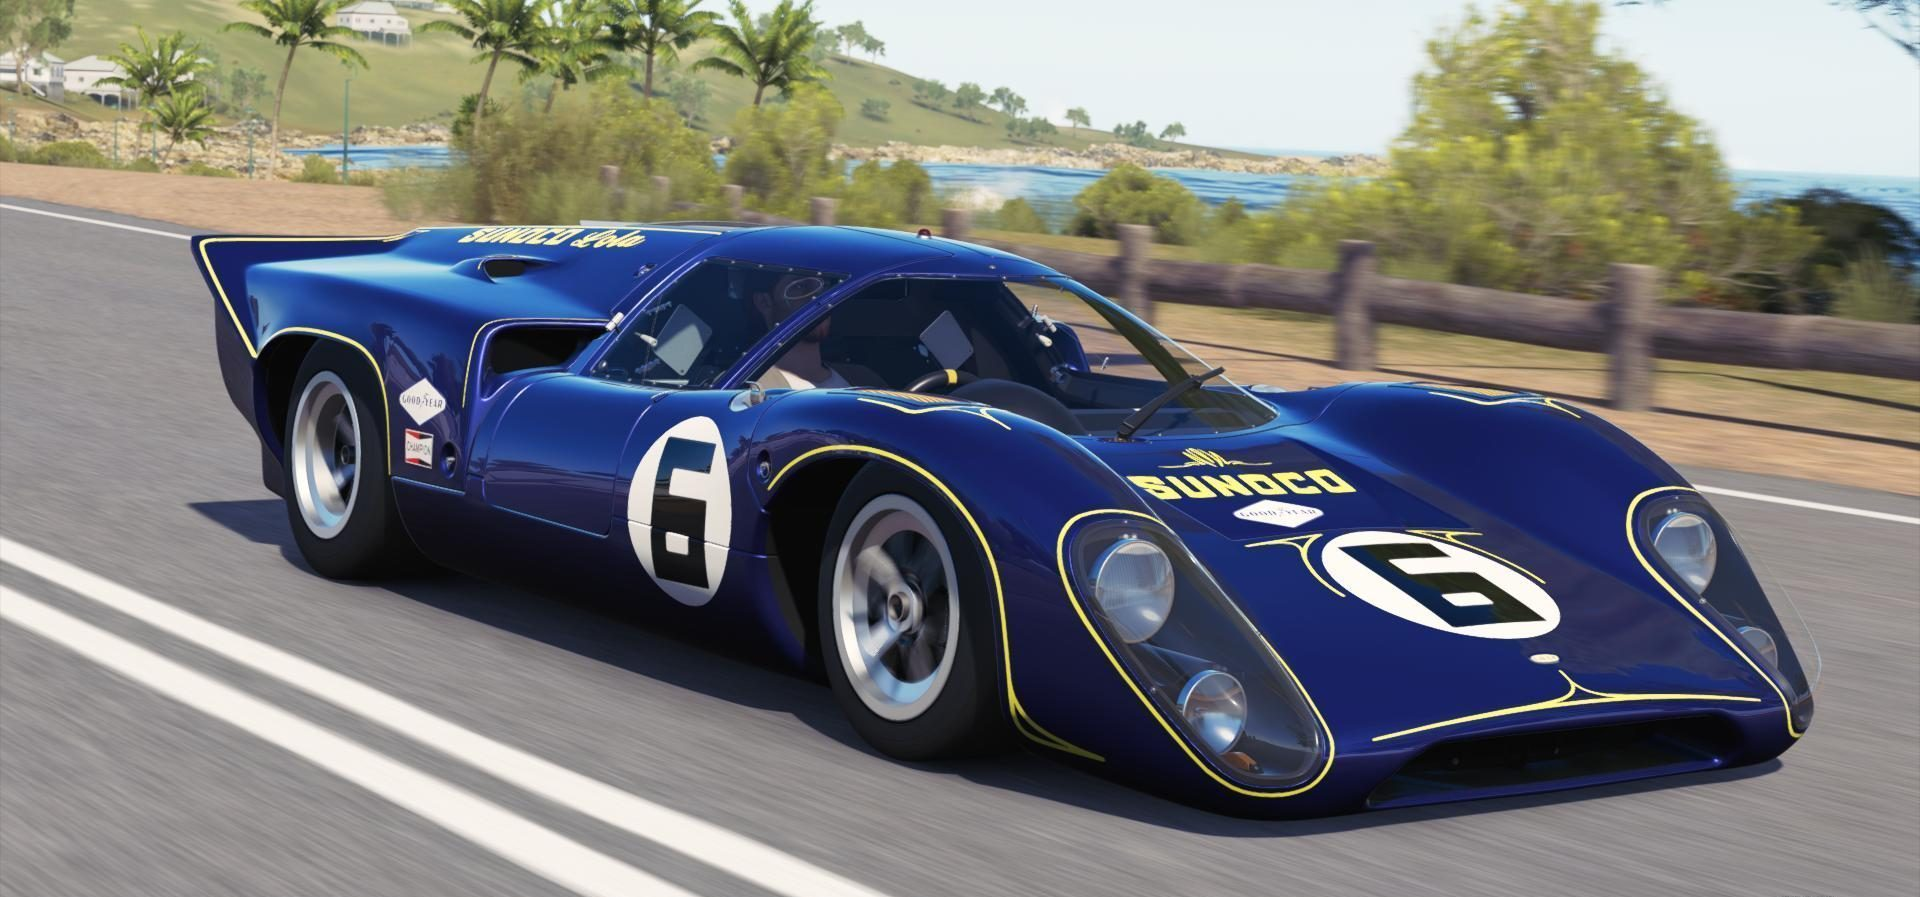 the forza horizon 3 leaks continue lola t70 honda s800 porsche 917 more. Black Bedroom Furniture Sets. Home Design Ideas